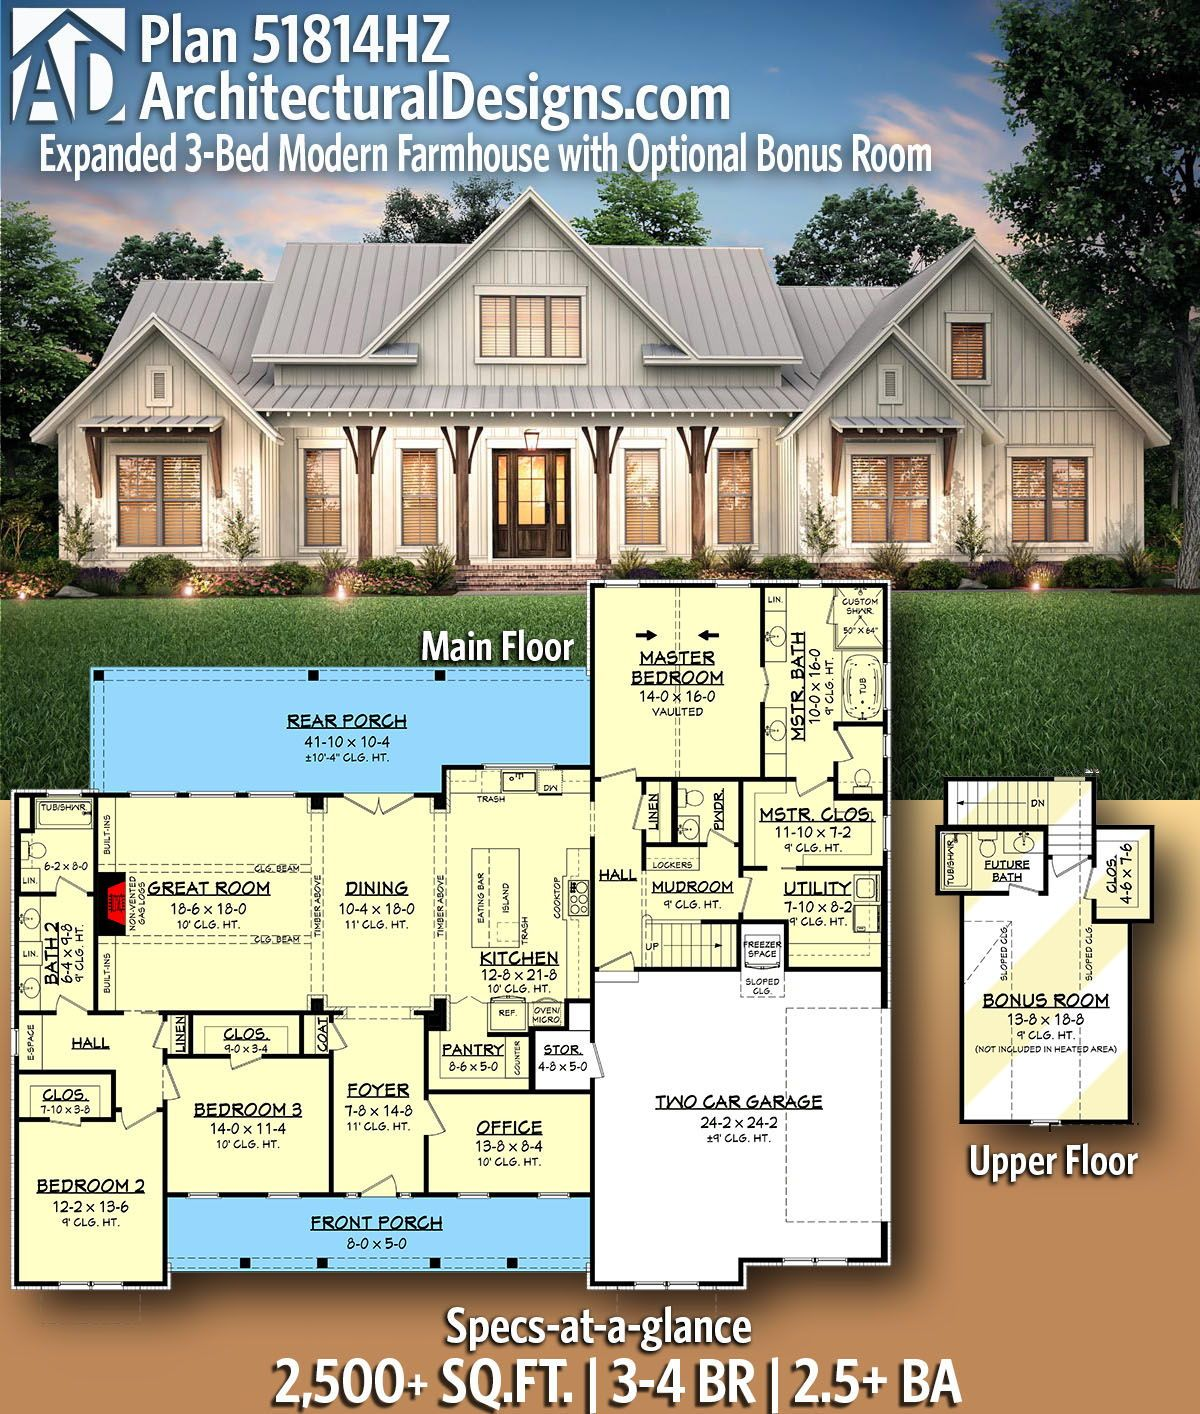 Plan 51814hz Expanded 3 Bed Modern Farmhouse With Optional Bonus Room In 2020 Modern Farmhouse Plans House Plans Farmhouse New House Plans